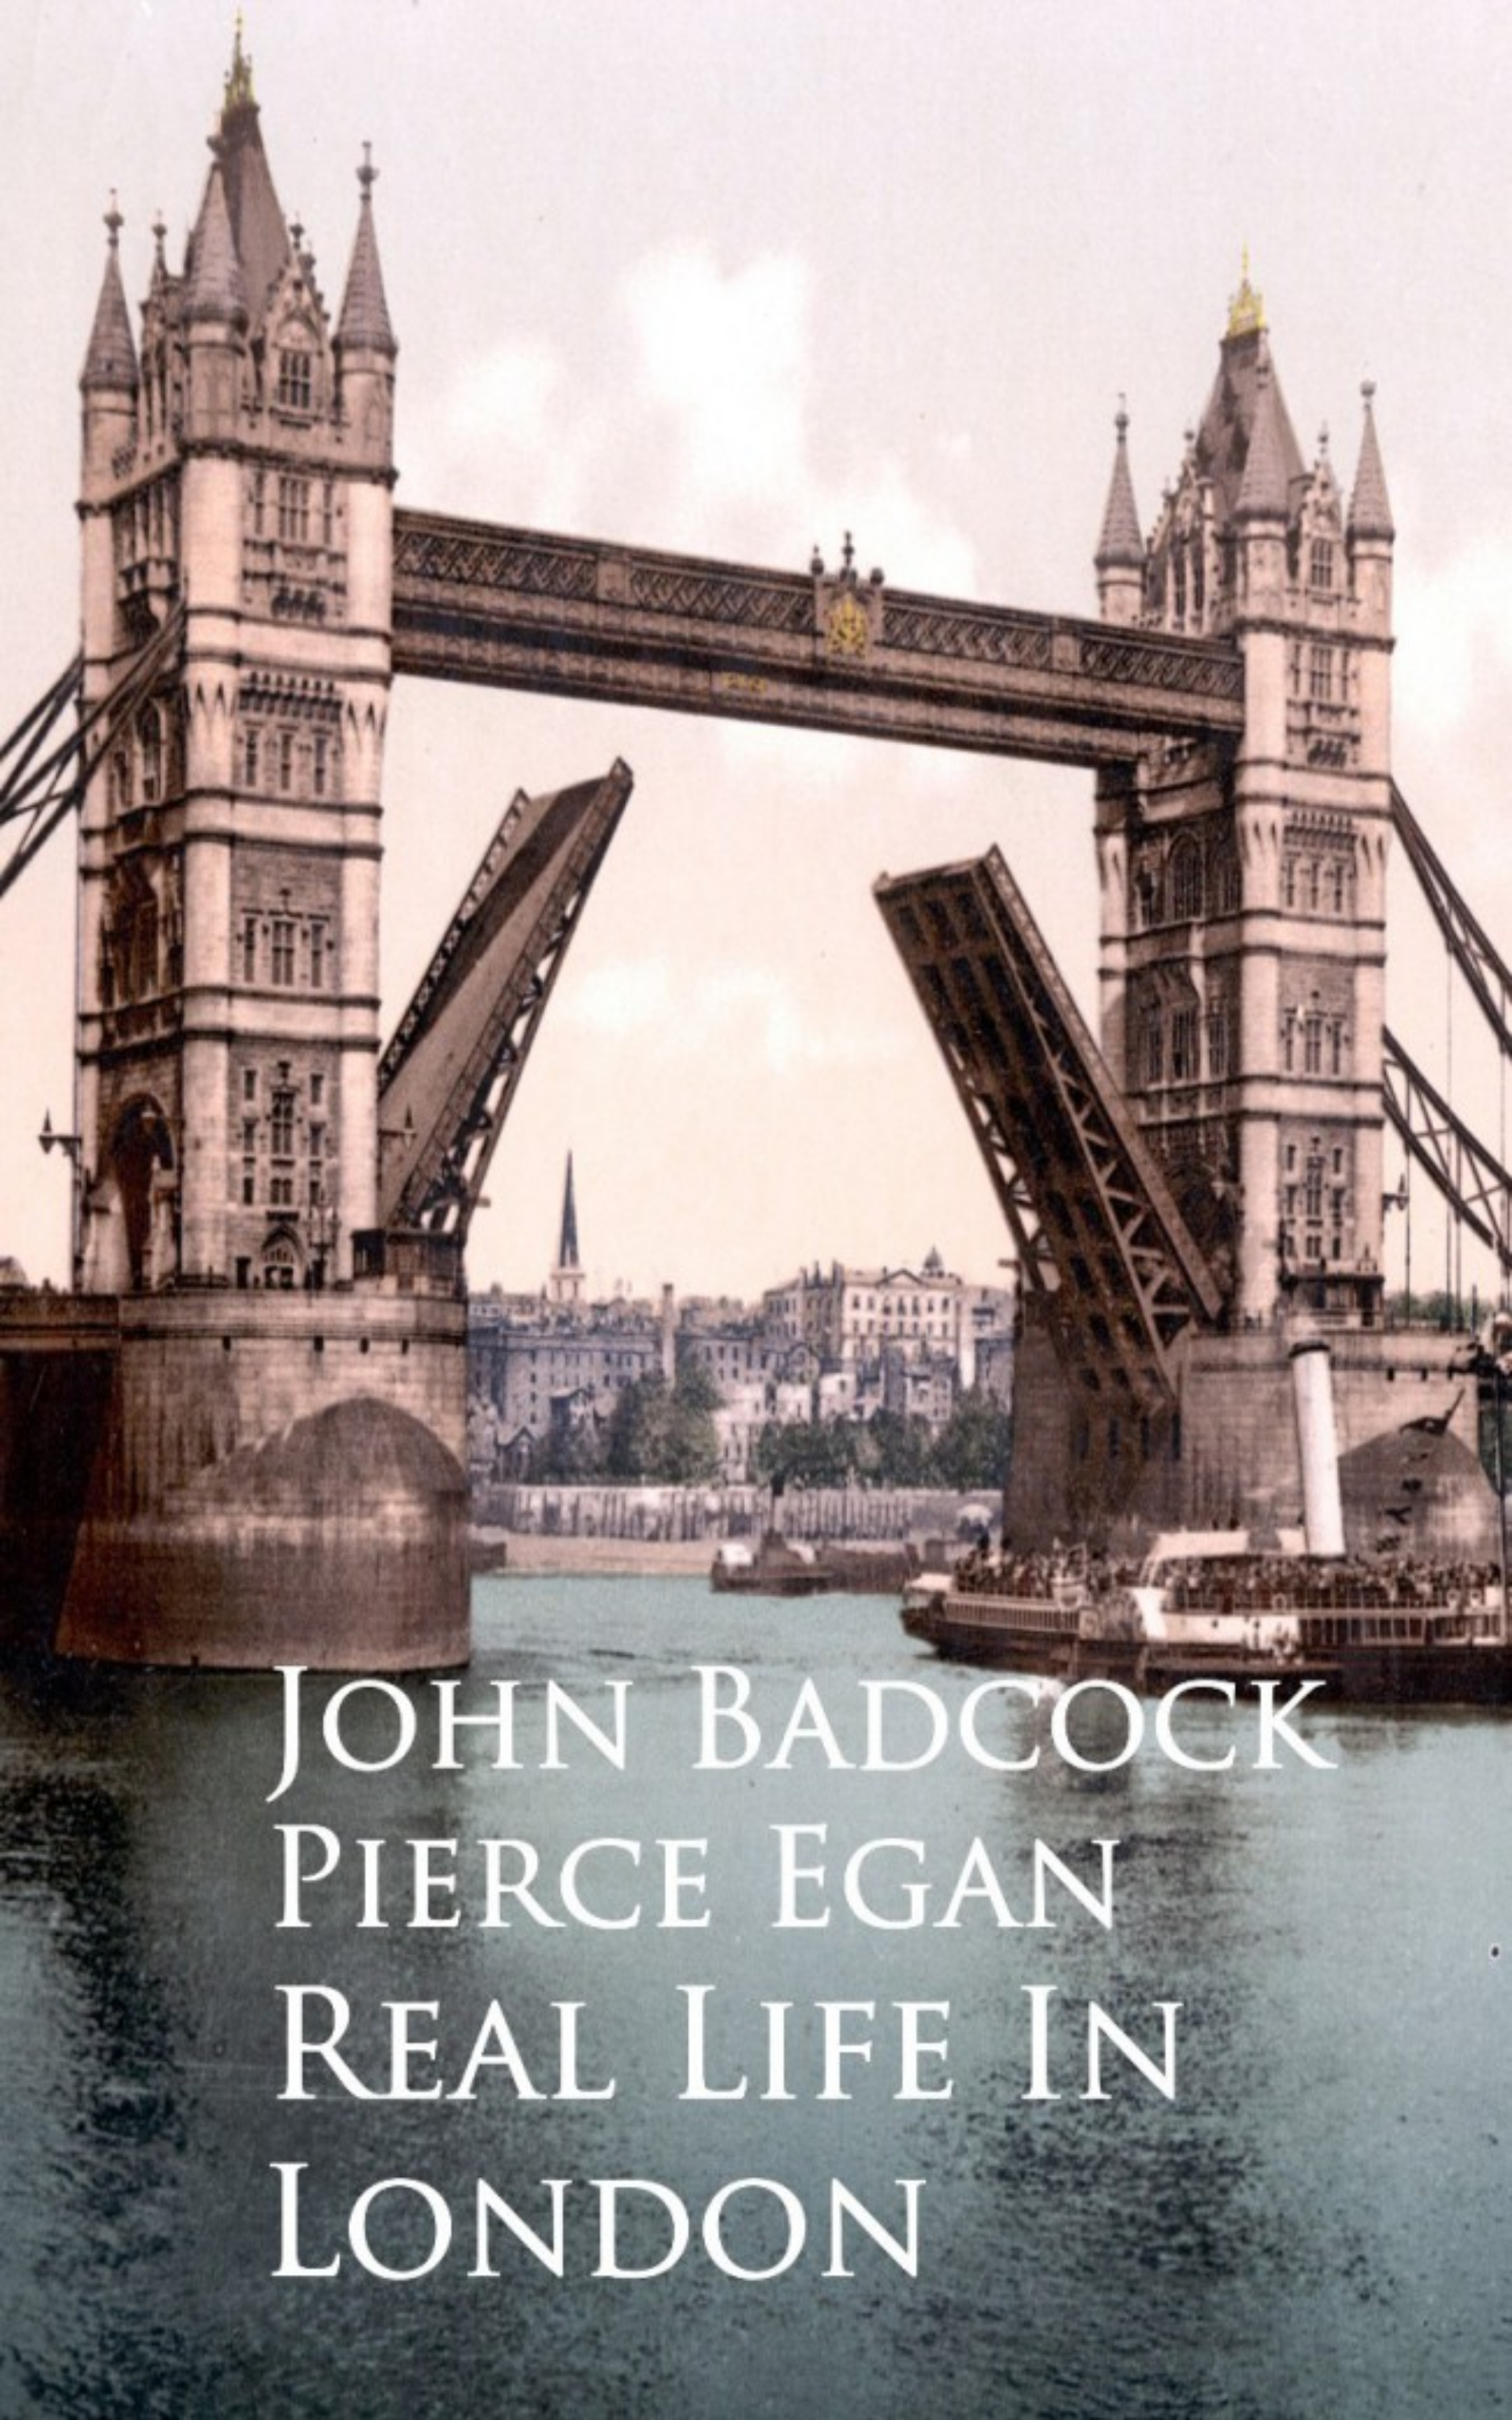 цена на John Badcock Pierce Egan Real Life In London